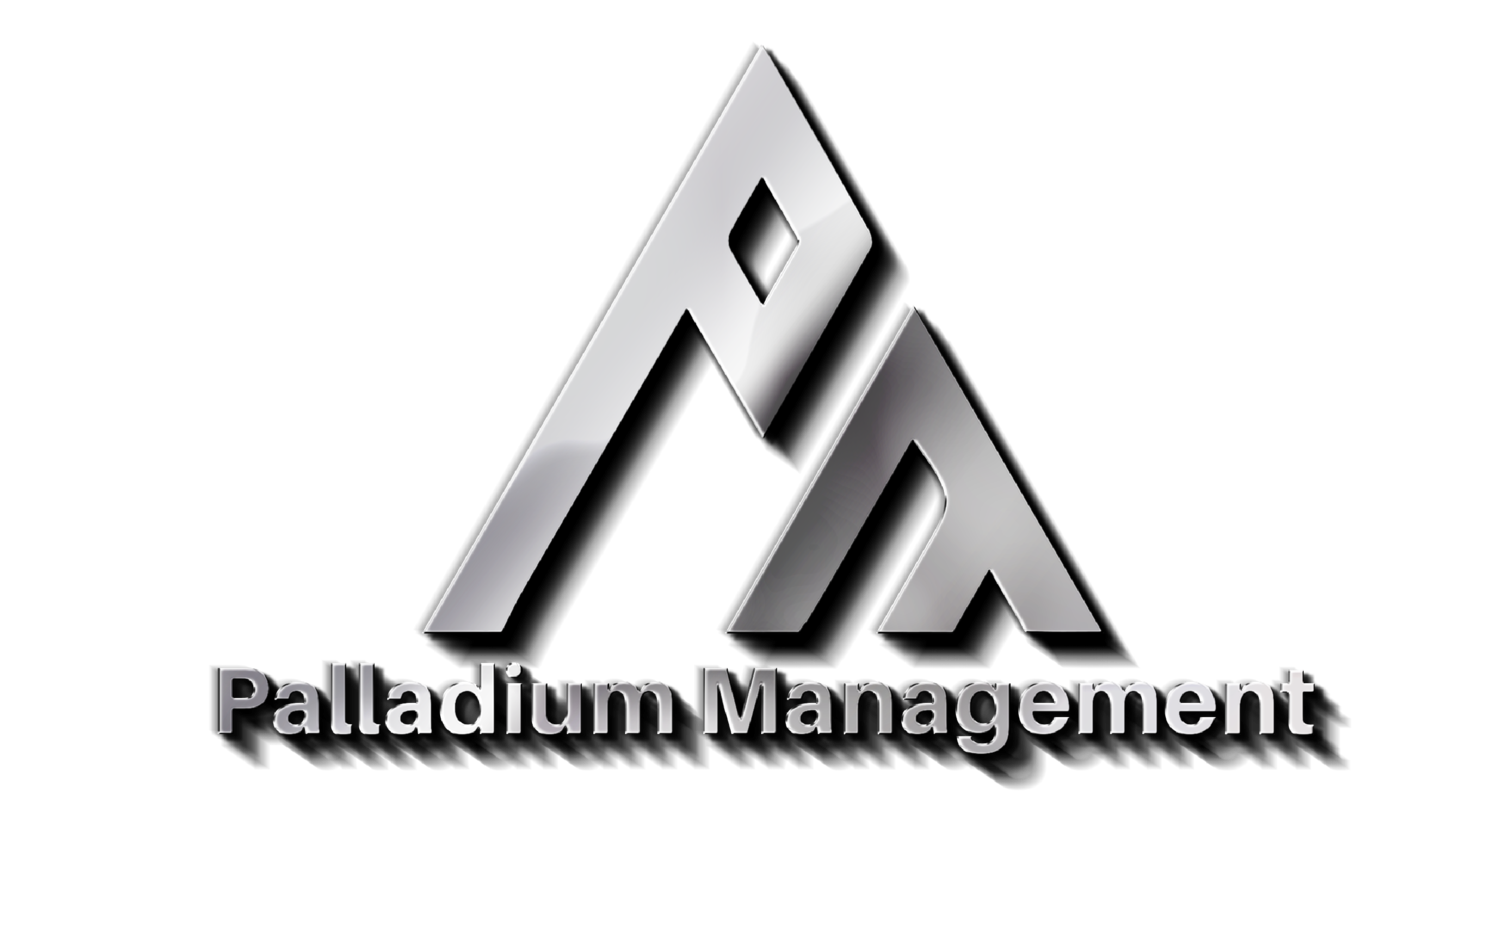 Palladium Management